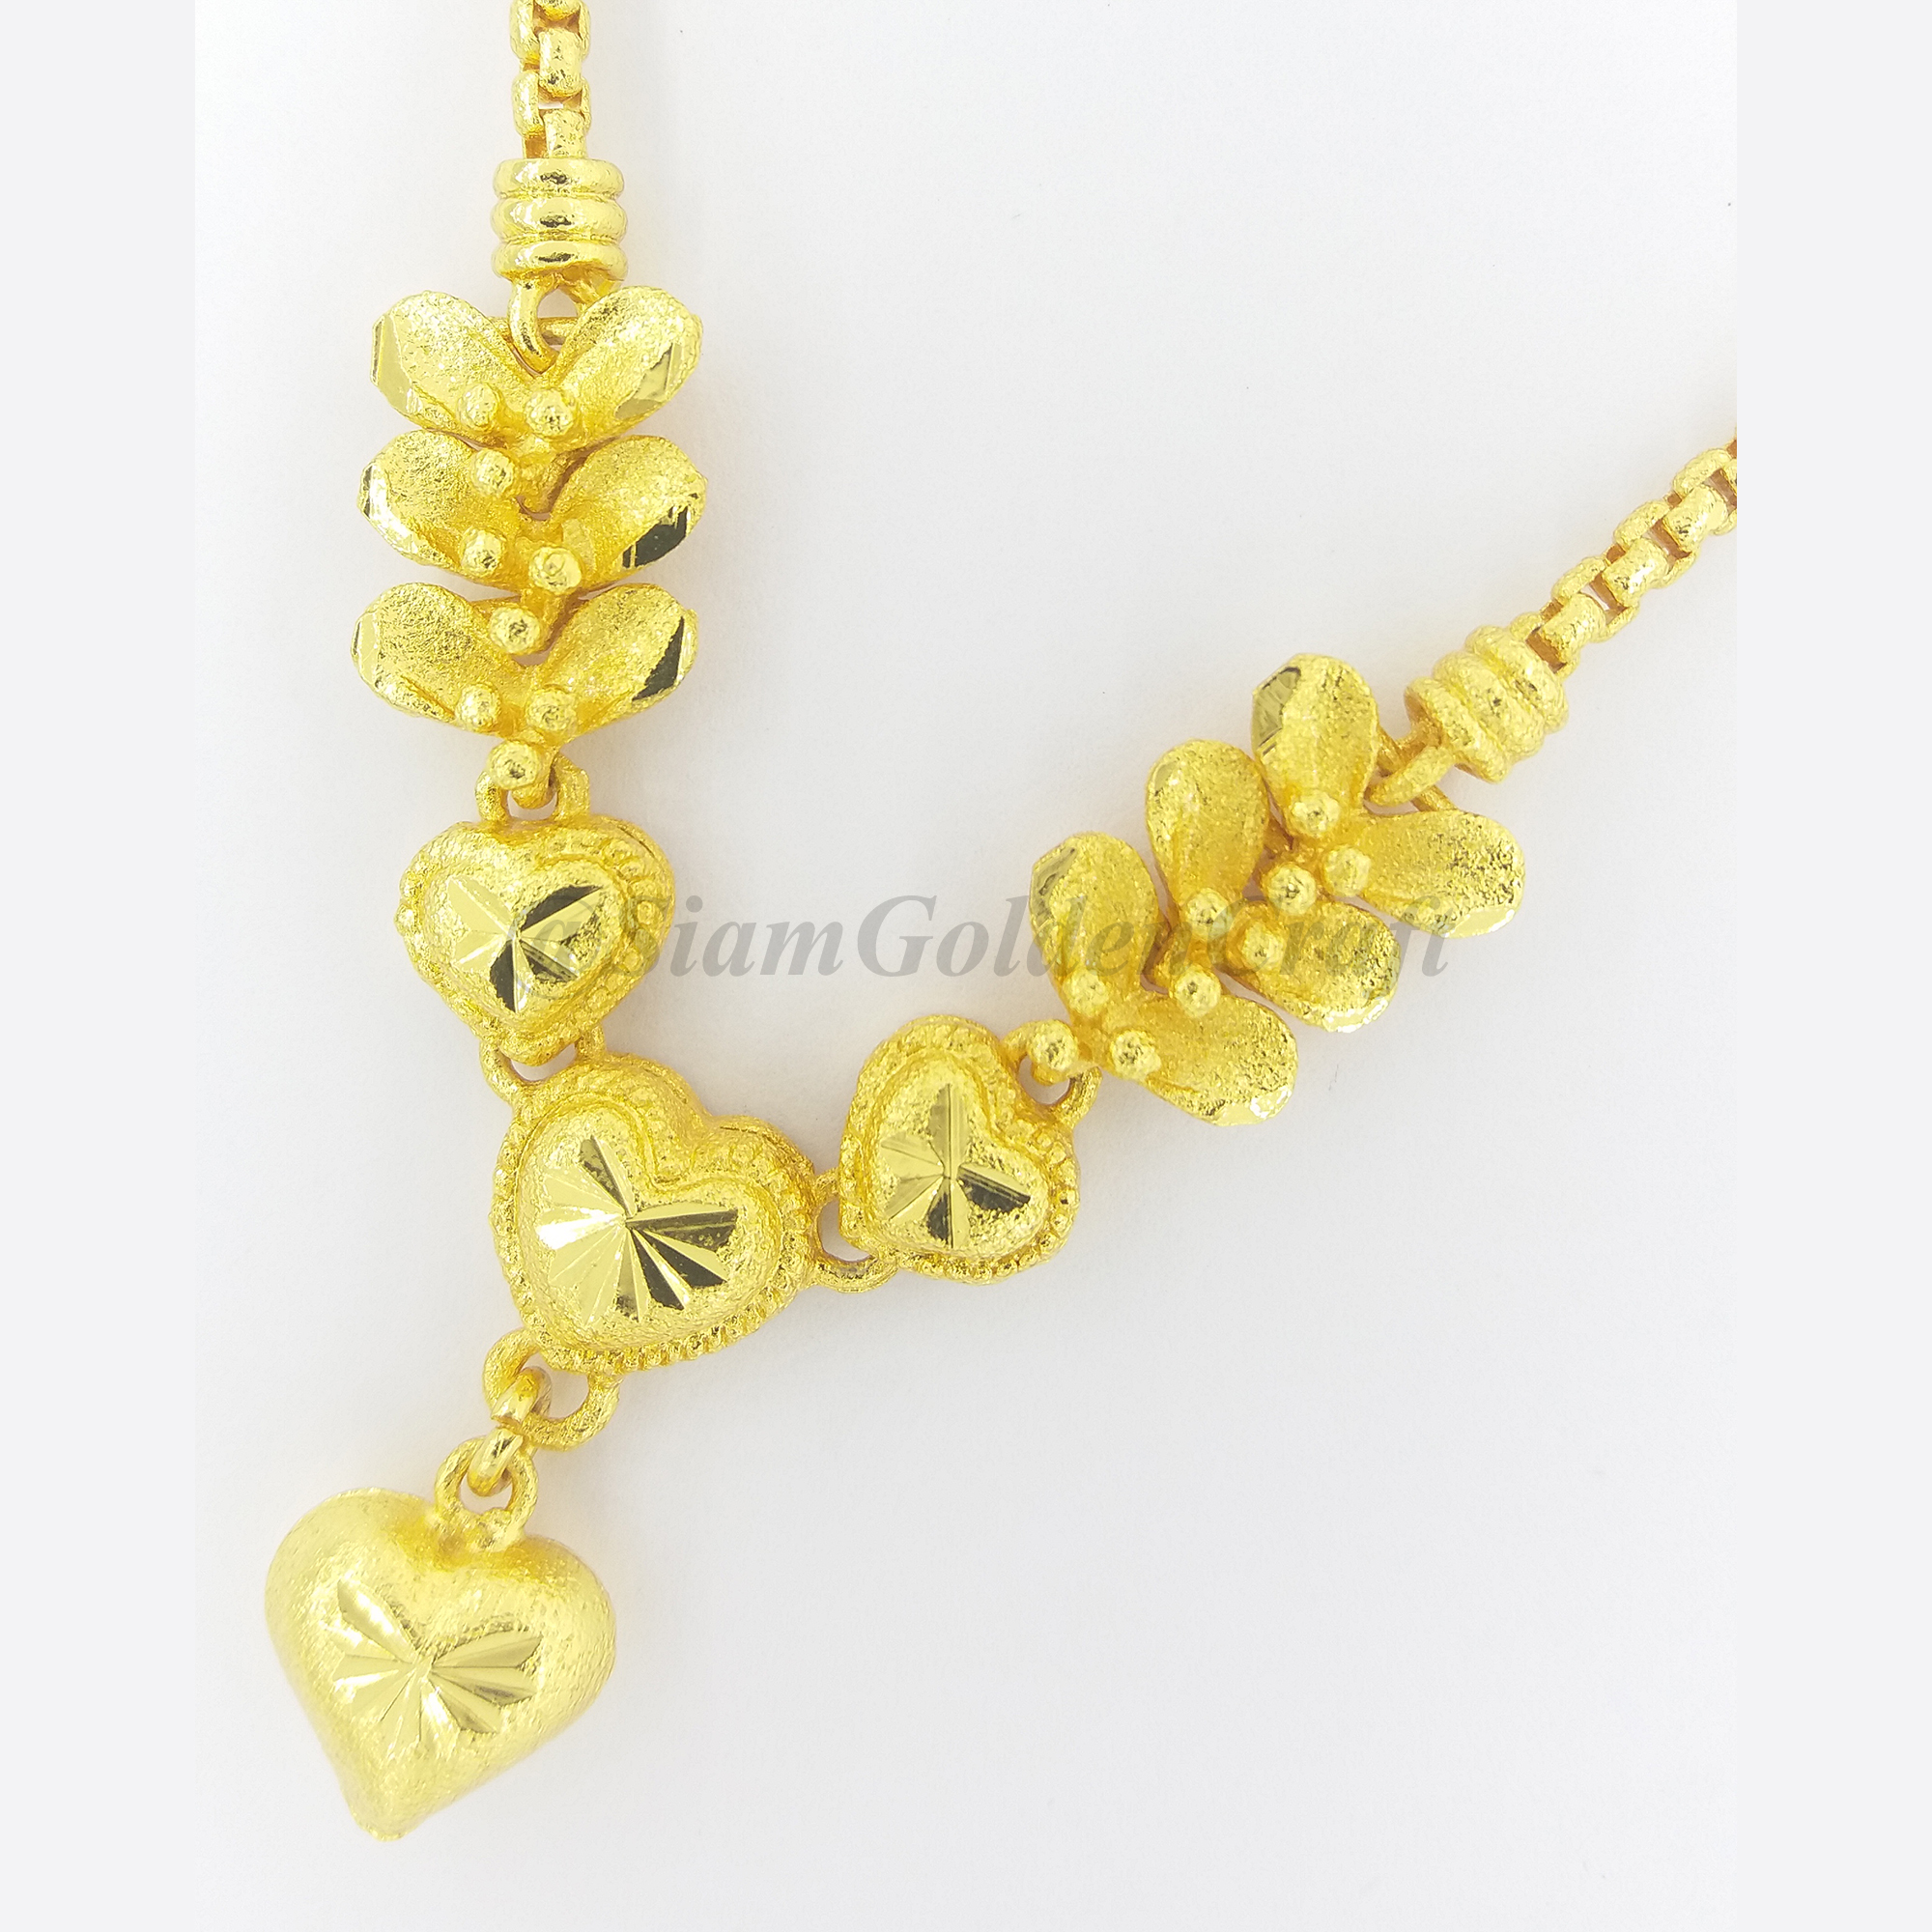 22K 23K 24K Thai Baht Gold Plate 18 Necklace 16 grams GP Yellow